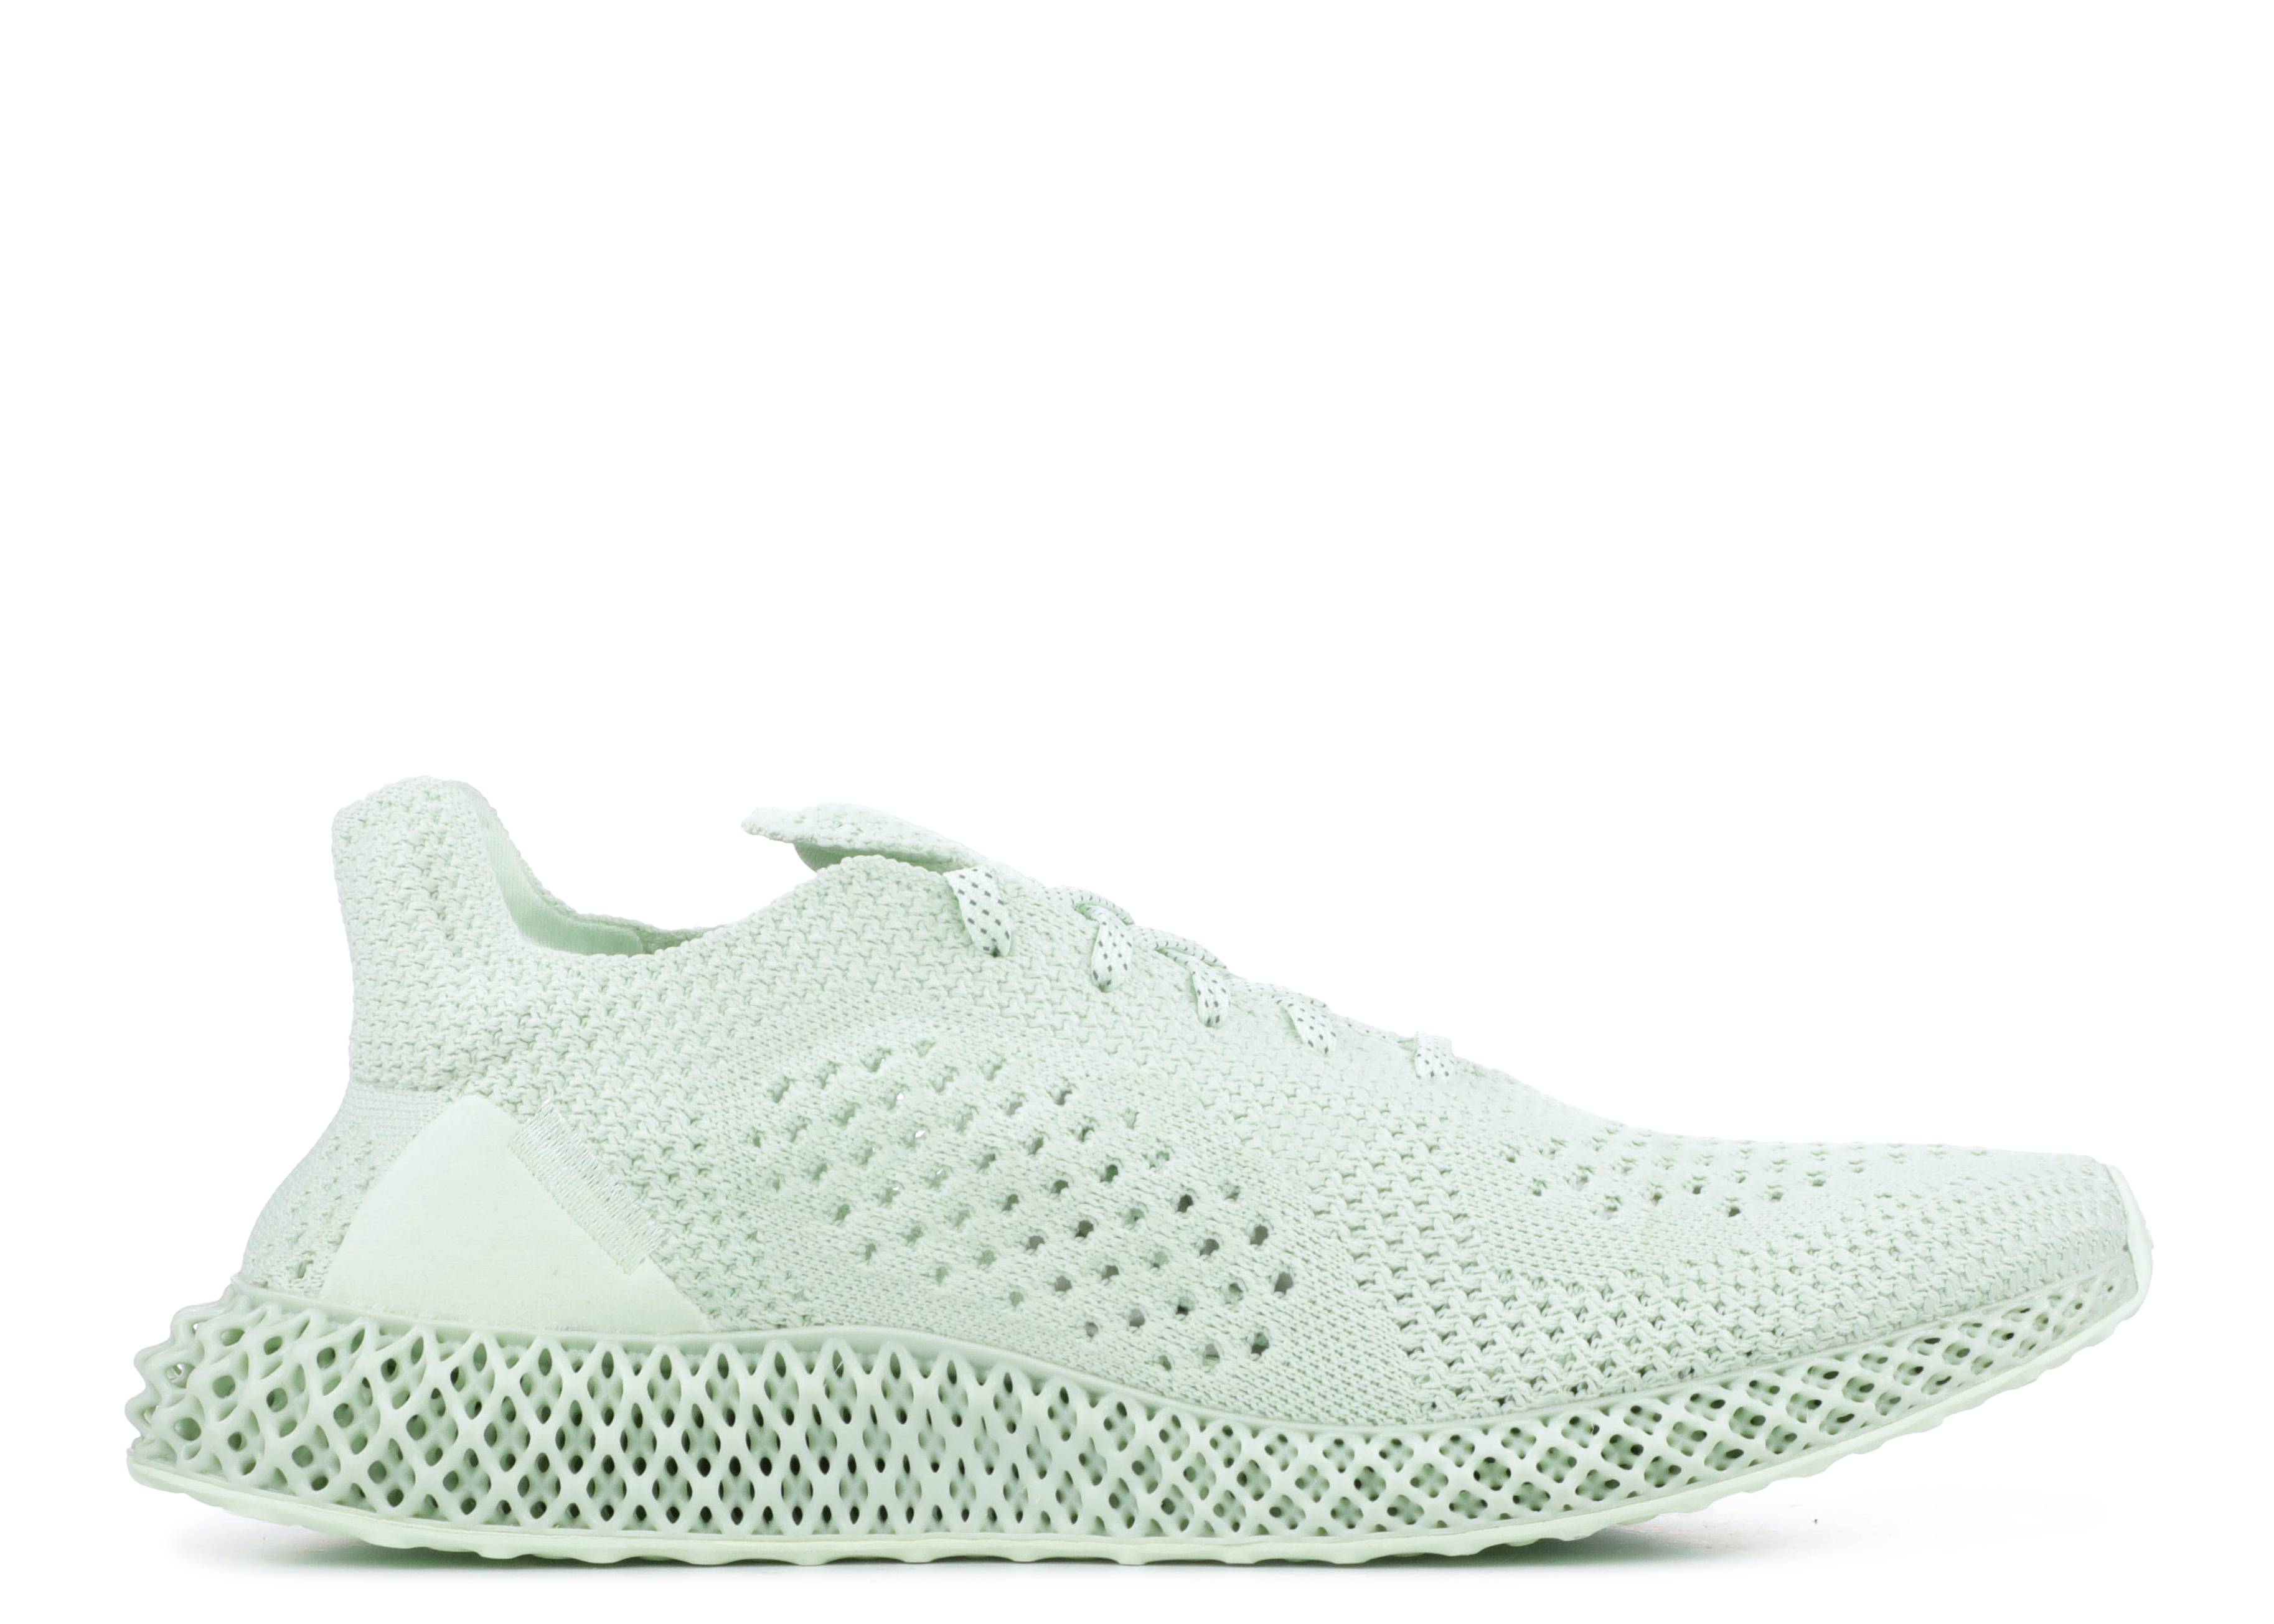 newest collection 7b1fa 7af6f adidas. arsham future runner 4d